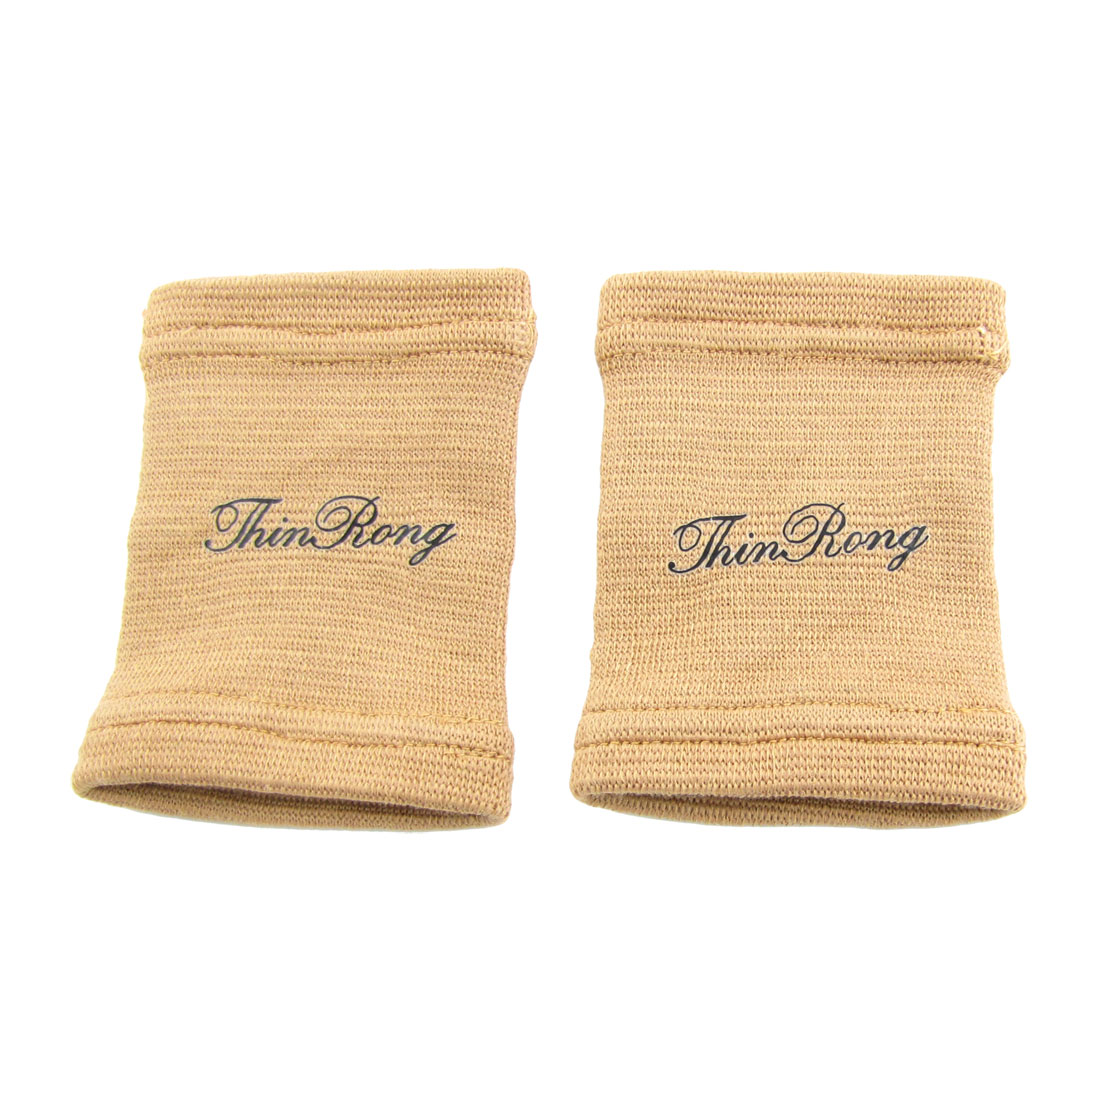 2 Pcs Khaki Elastic Knitted Fabric Bike Basketball Sports Wrist Support Brace